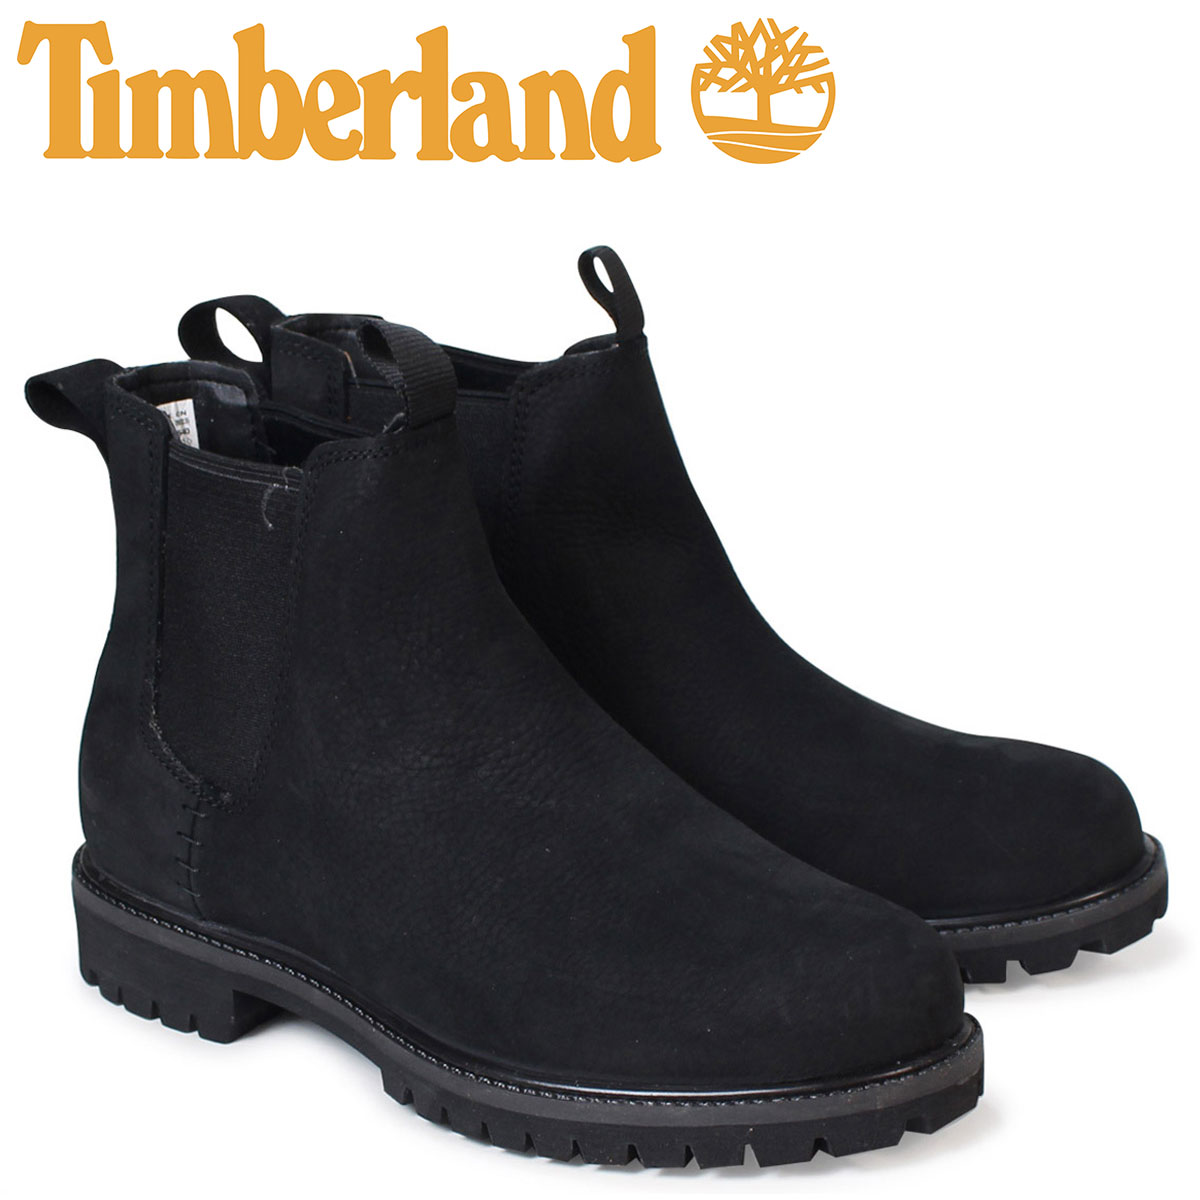 937de8734a82 6 inches of Timberland men s Timberland boots premium 6INCHI PREMIUM  CHELSEA BOOTS A1M55 W Wise waterproofing black  load planned Shinnyu load  in ...